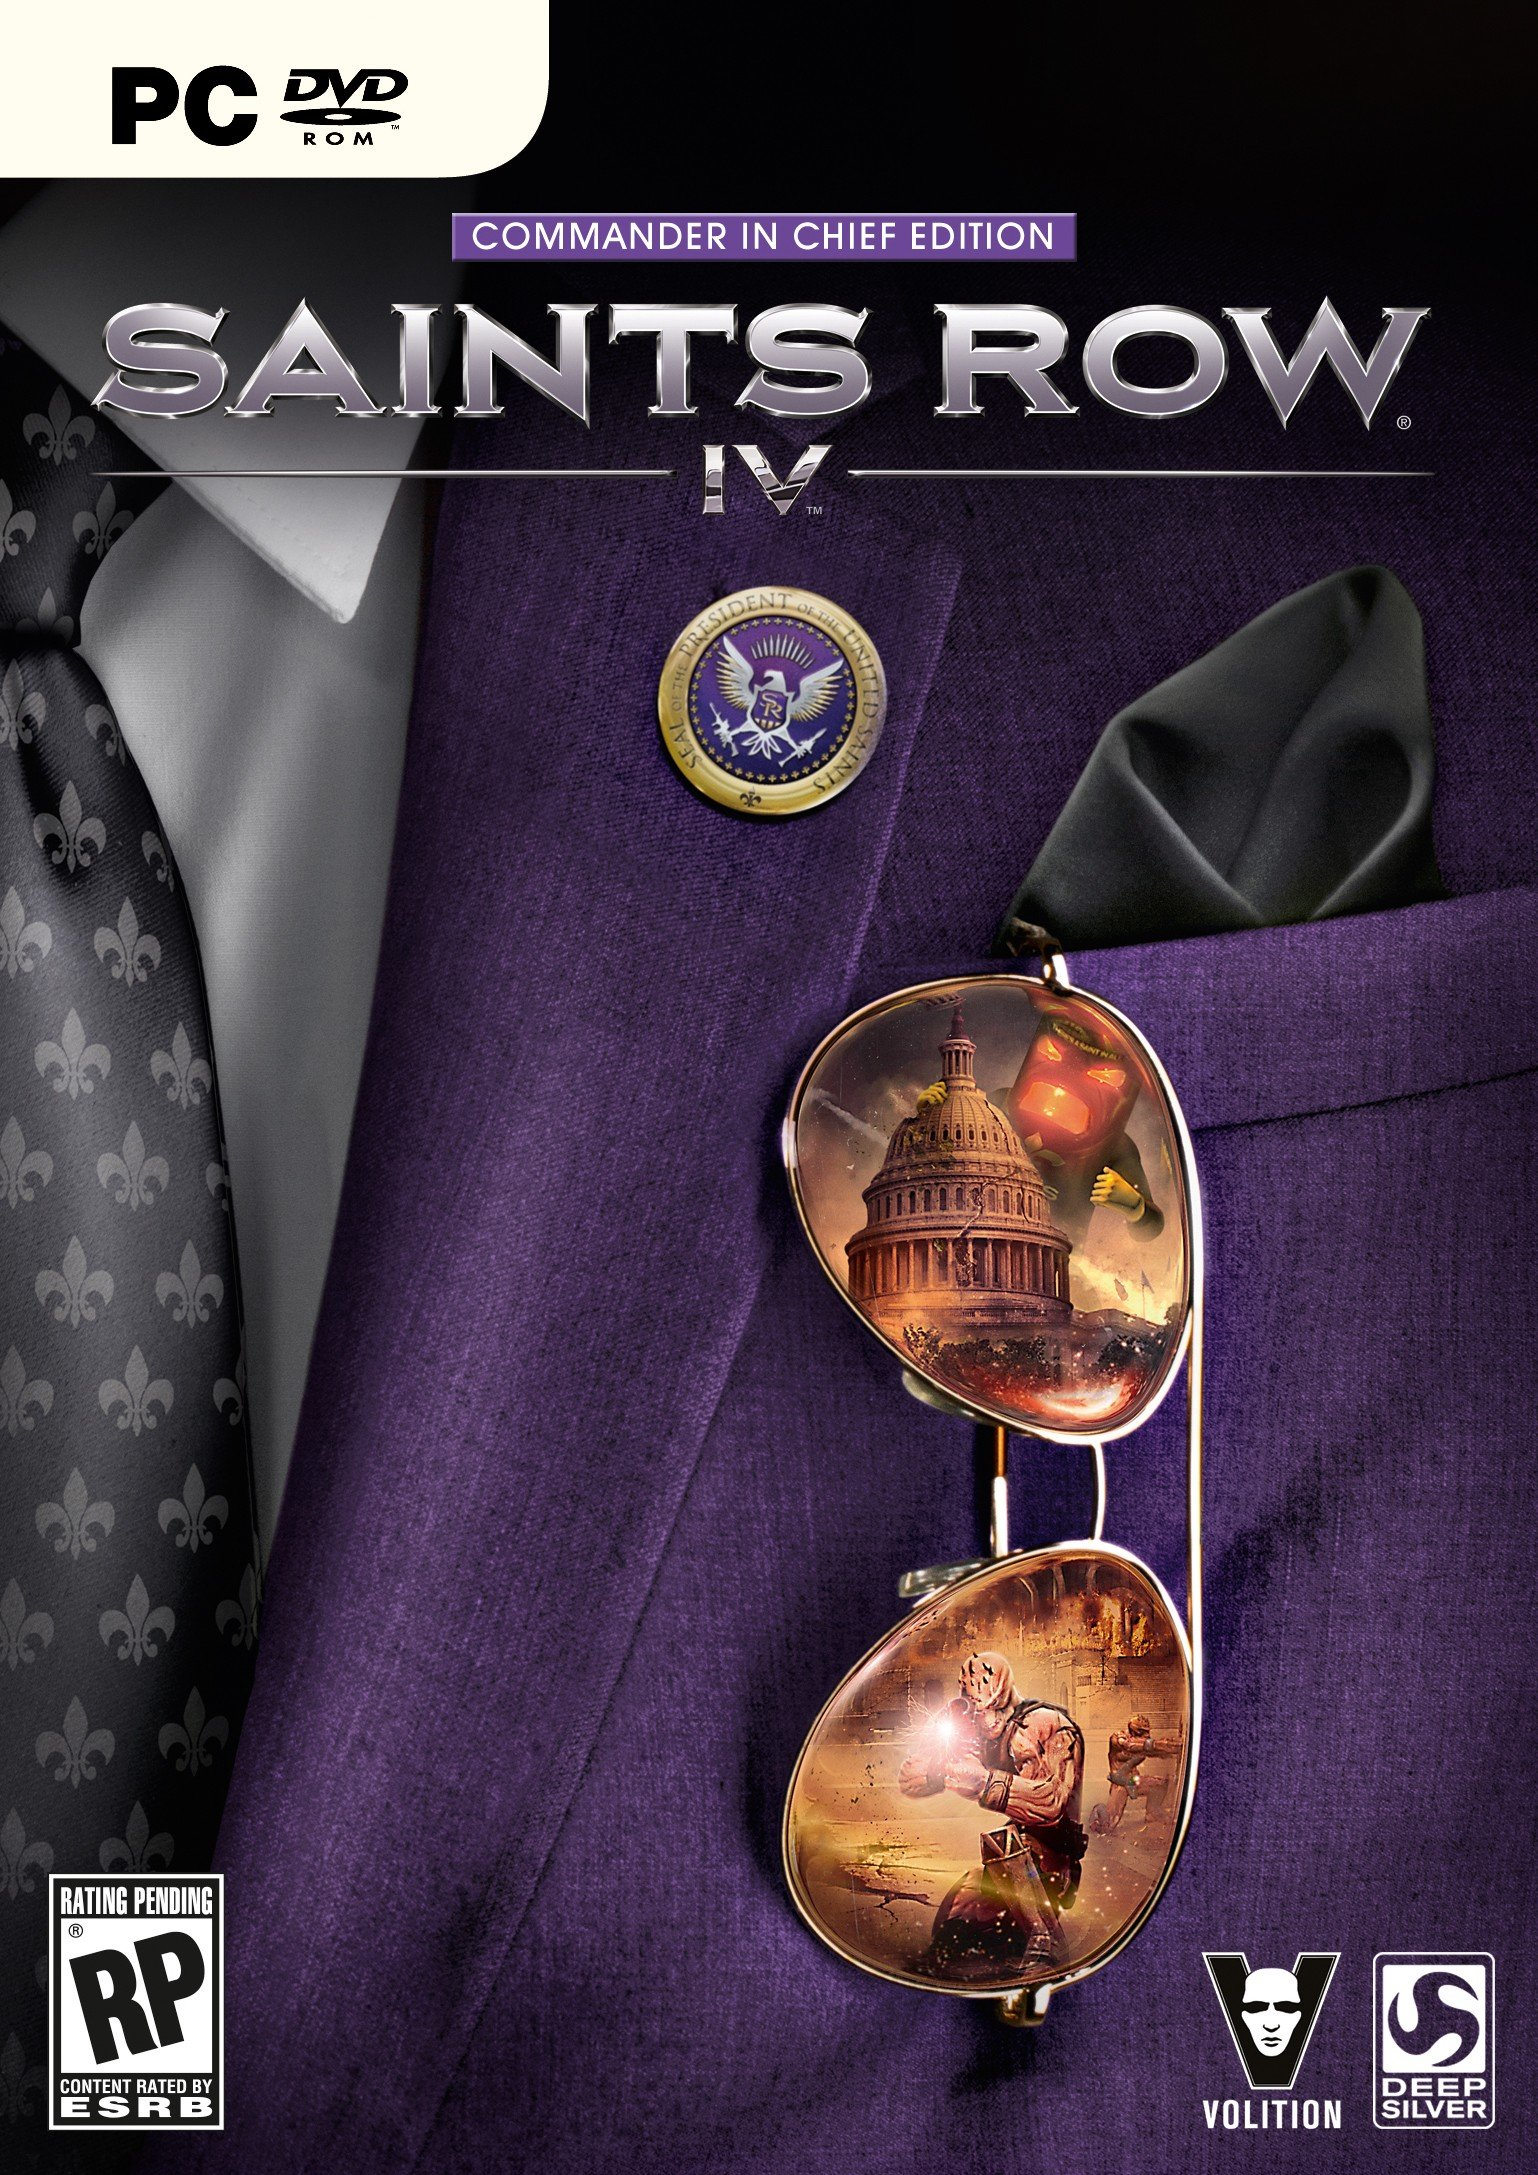 http://www.lightninggamingnews.com/wp-content/uploads/2013/05/Saints-Row-4-Box-Art-Revealed-Hail-to-the-Chief-video-series-launches-2.jpg